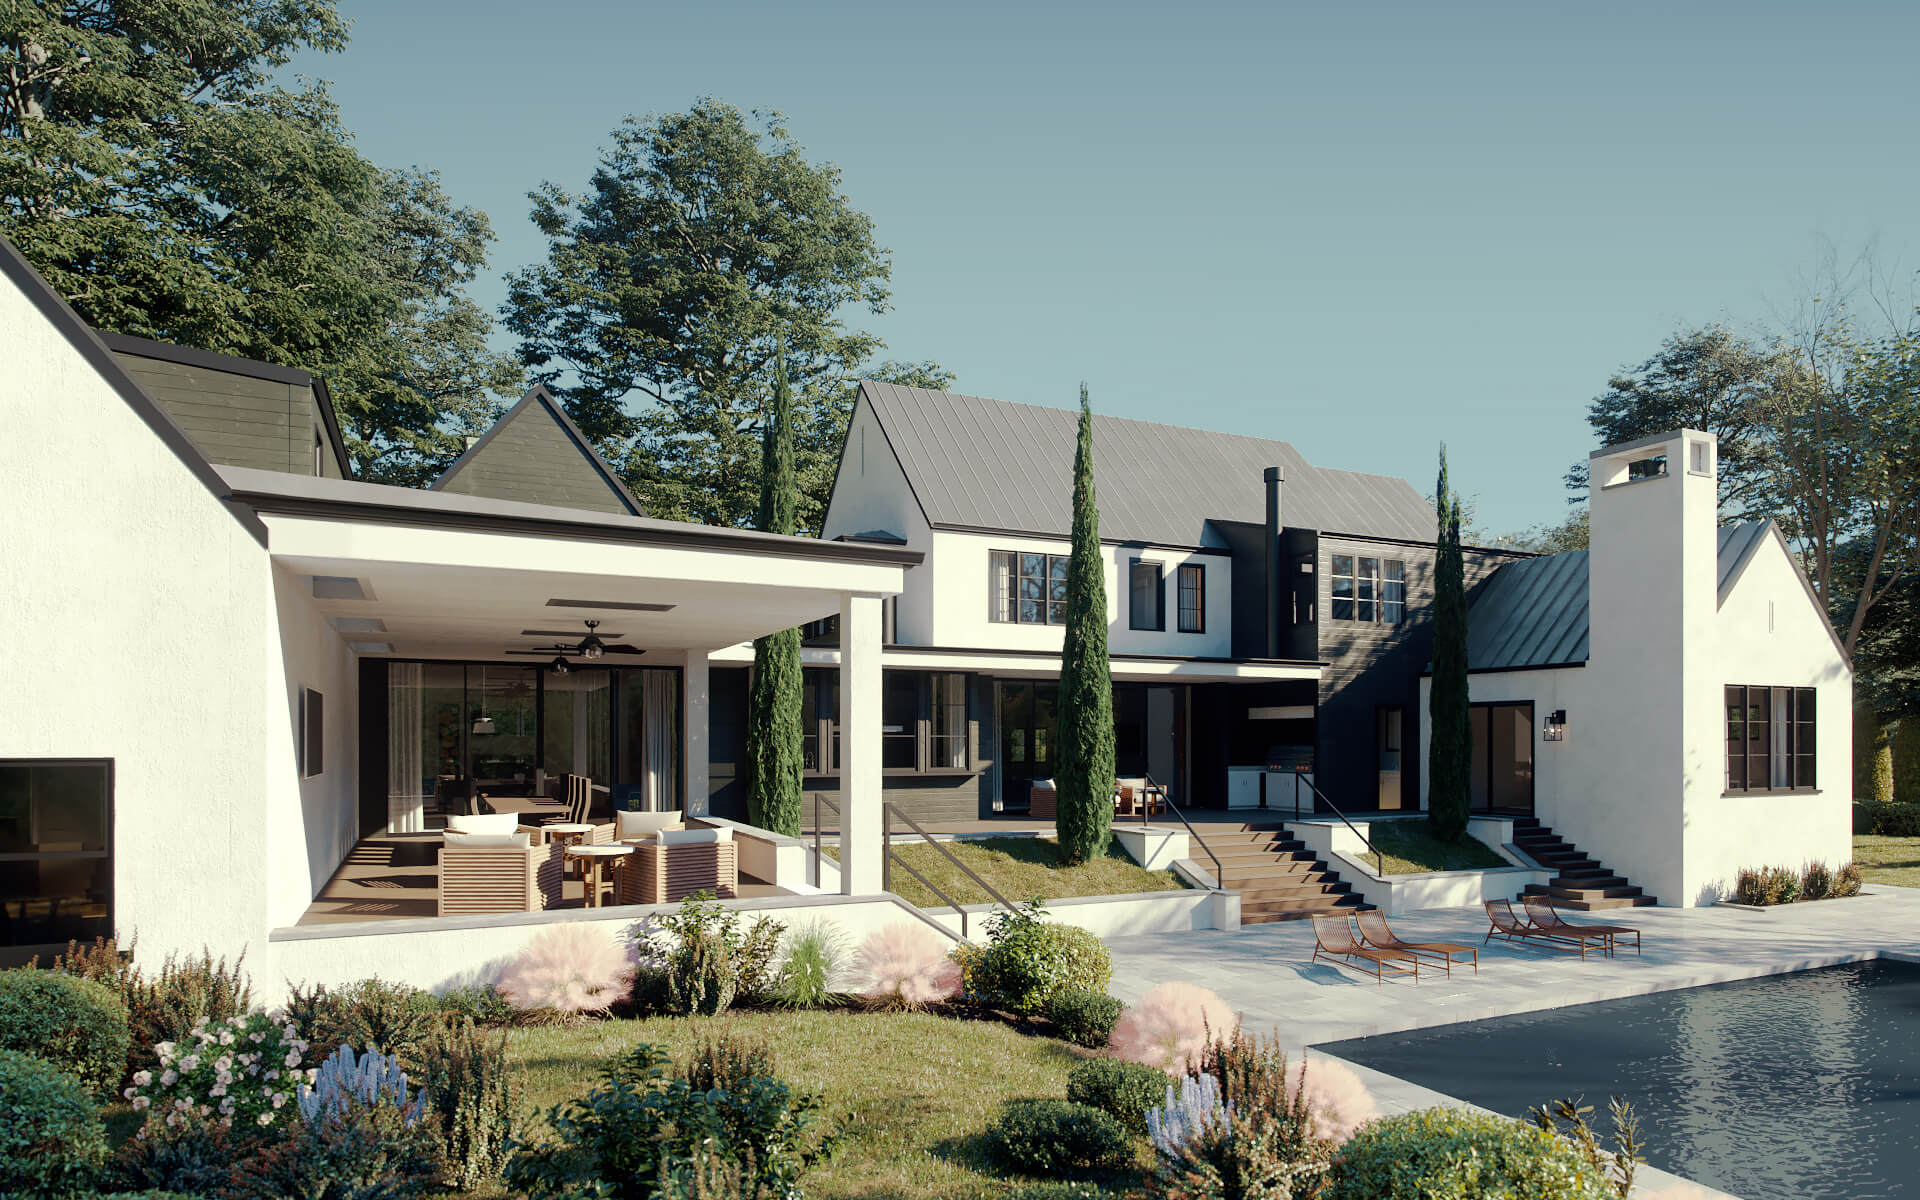 Outsource 3D Visualization for an Cottage Exterior Presentation